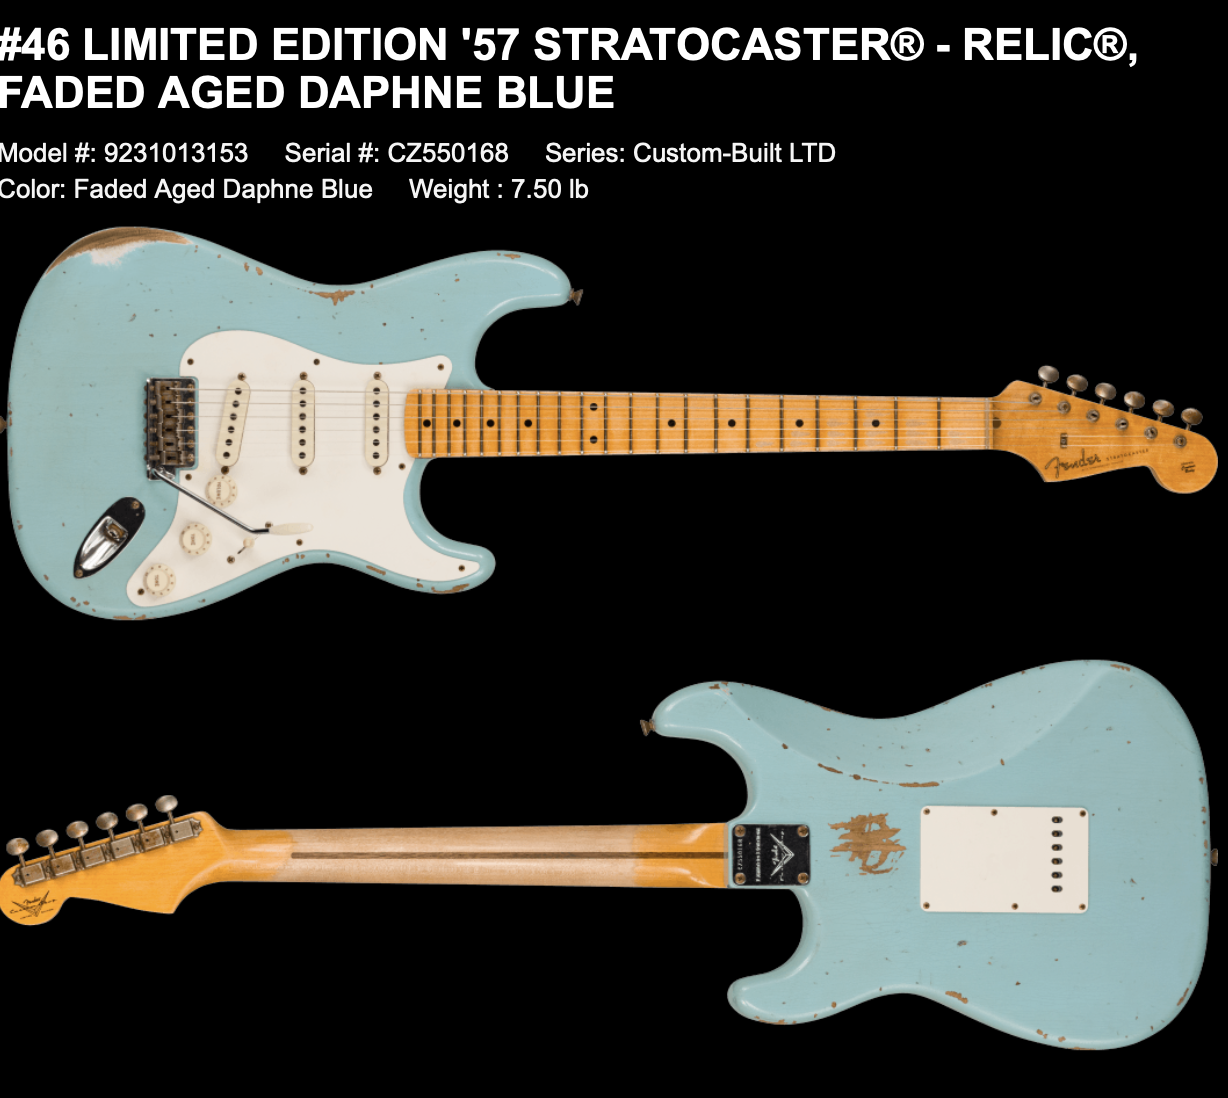 (PRE-ORDER) FENDER CUSTOM SHOP LIMITED EDITION '57 STRATOCASTER RELIC IN FADED AGED DAPHNE BLUE